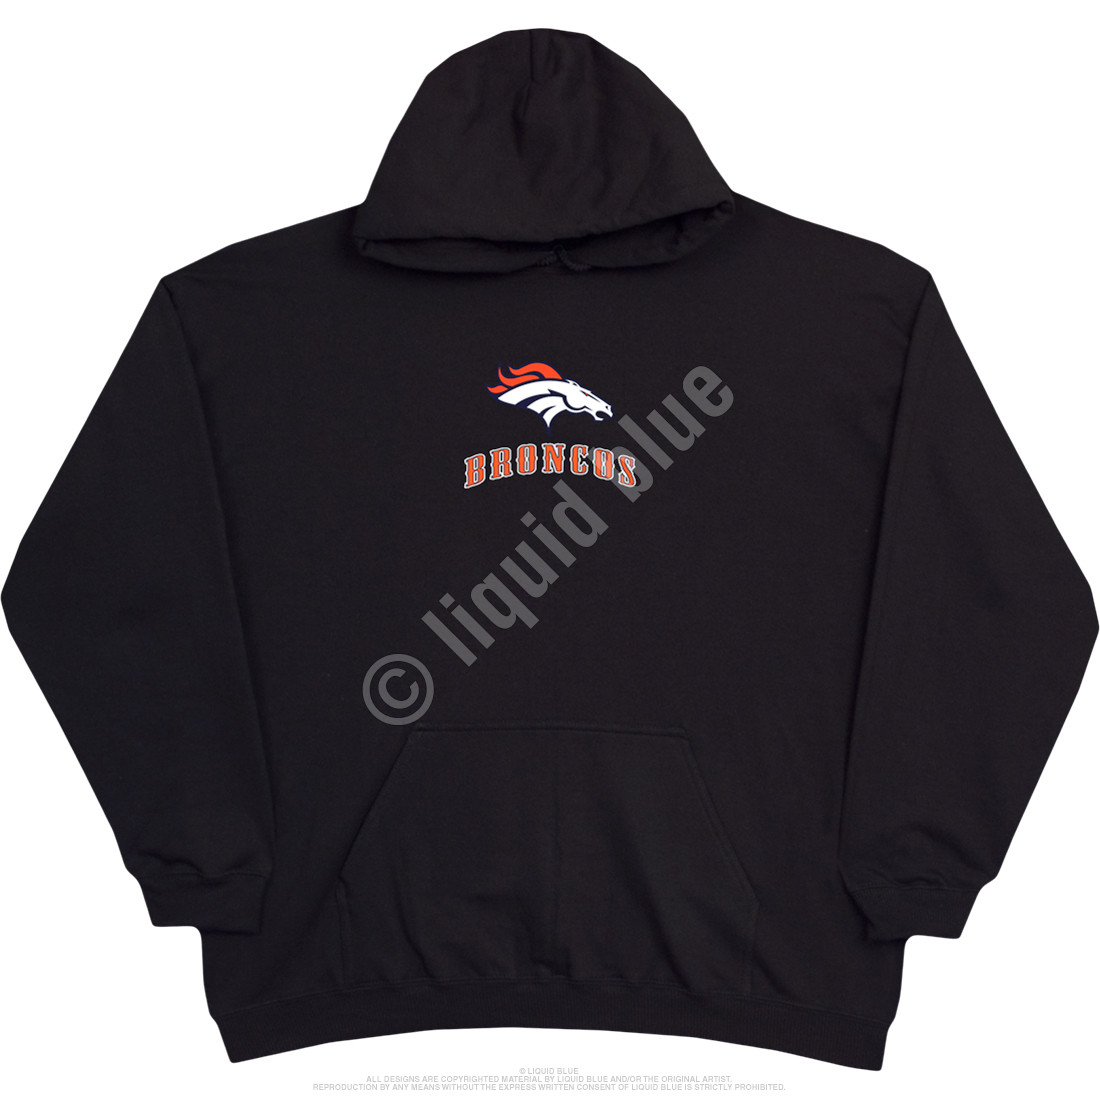 Denver Broncos Running Back Black Hoodie